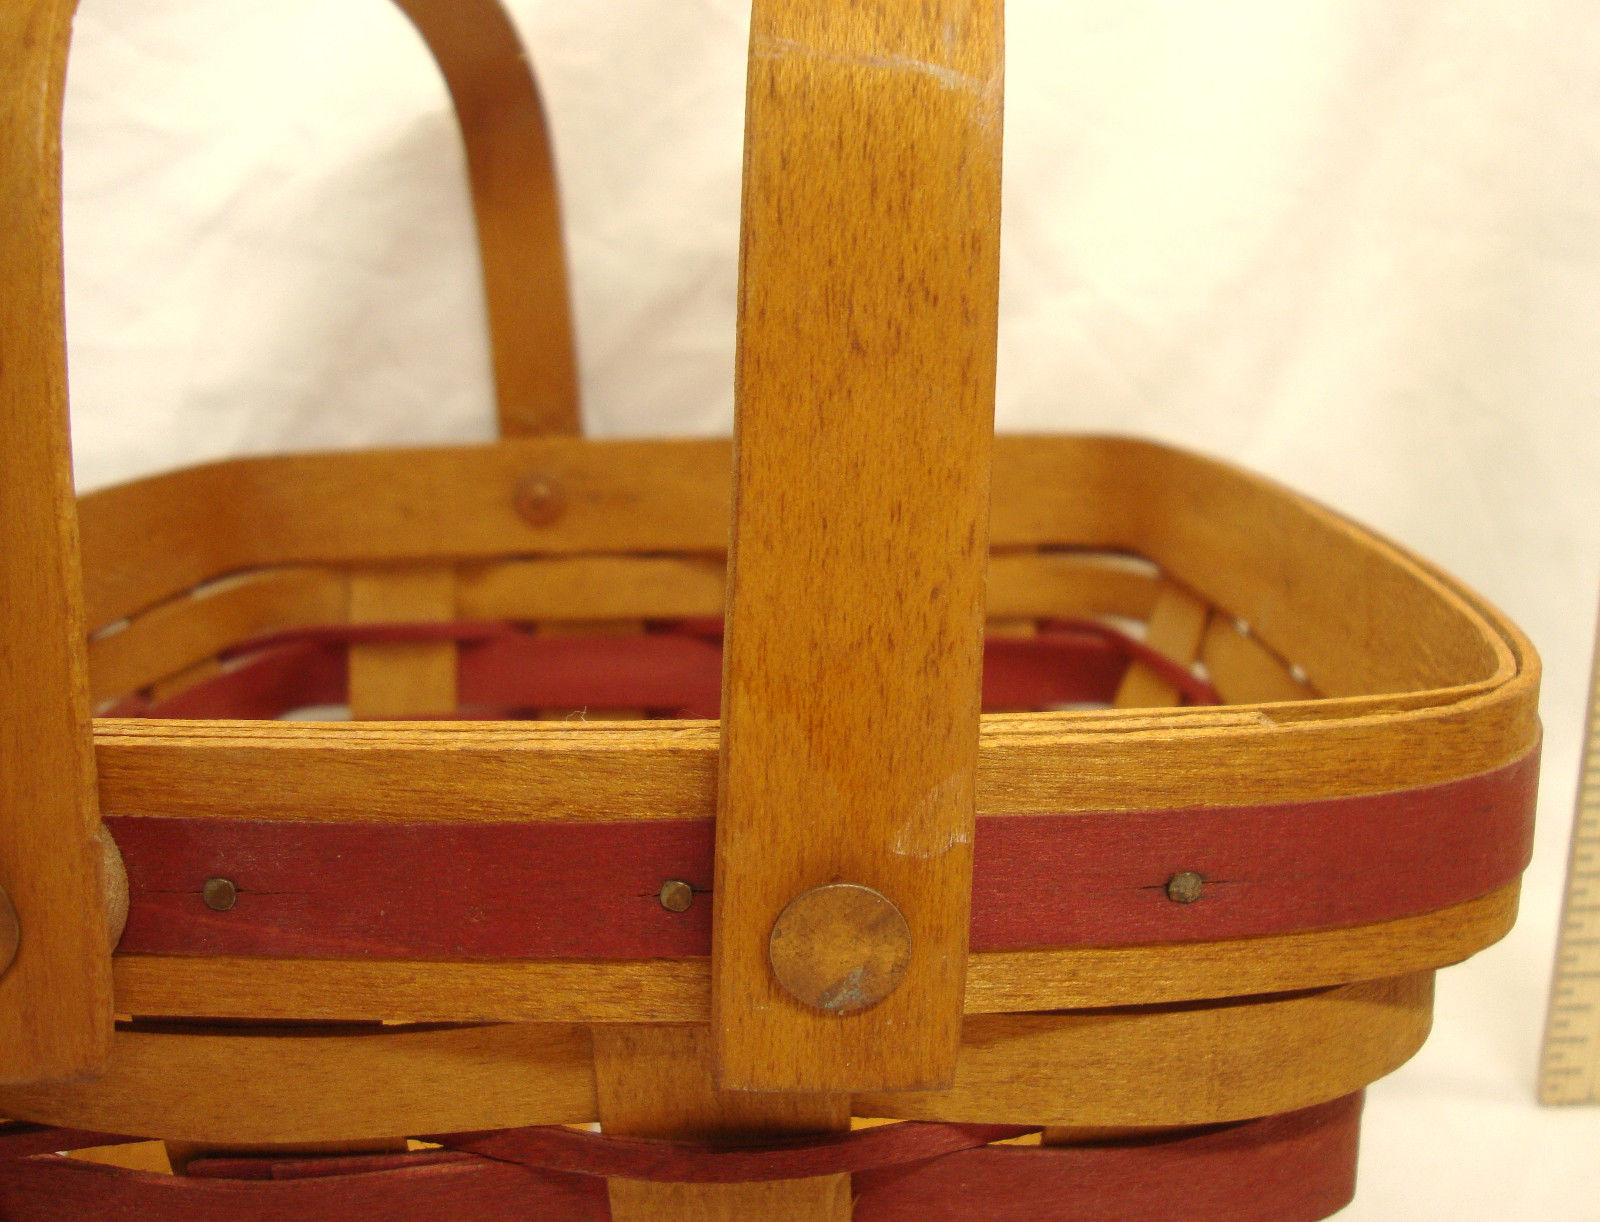 1993 Longaberger Bayberry Basket Christmas Collection w/ Liner and Protector